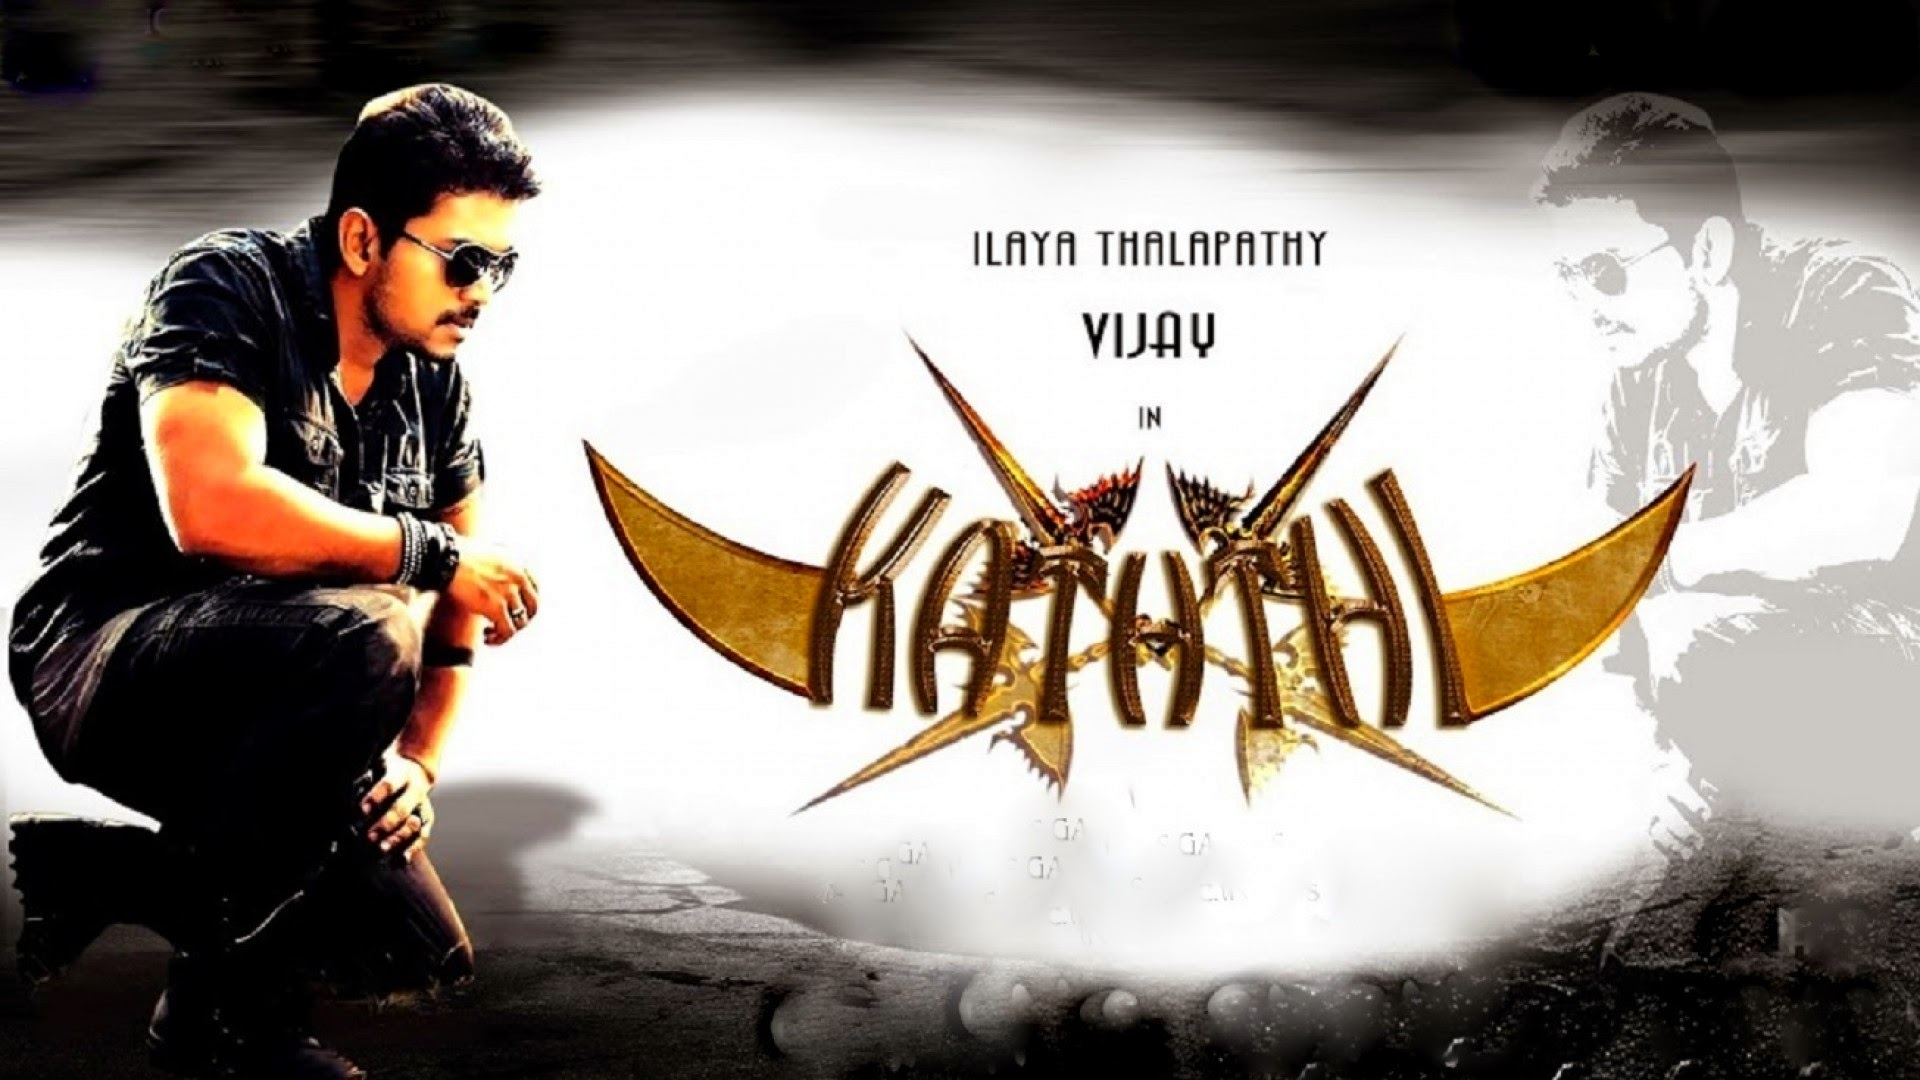 Vijay Love Hd Wallpaper : Vijay Wallpapers High Resolution and Quality Download